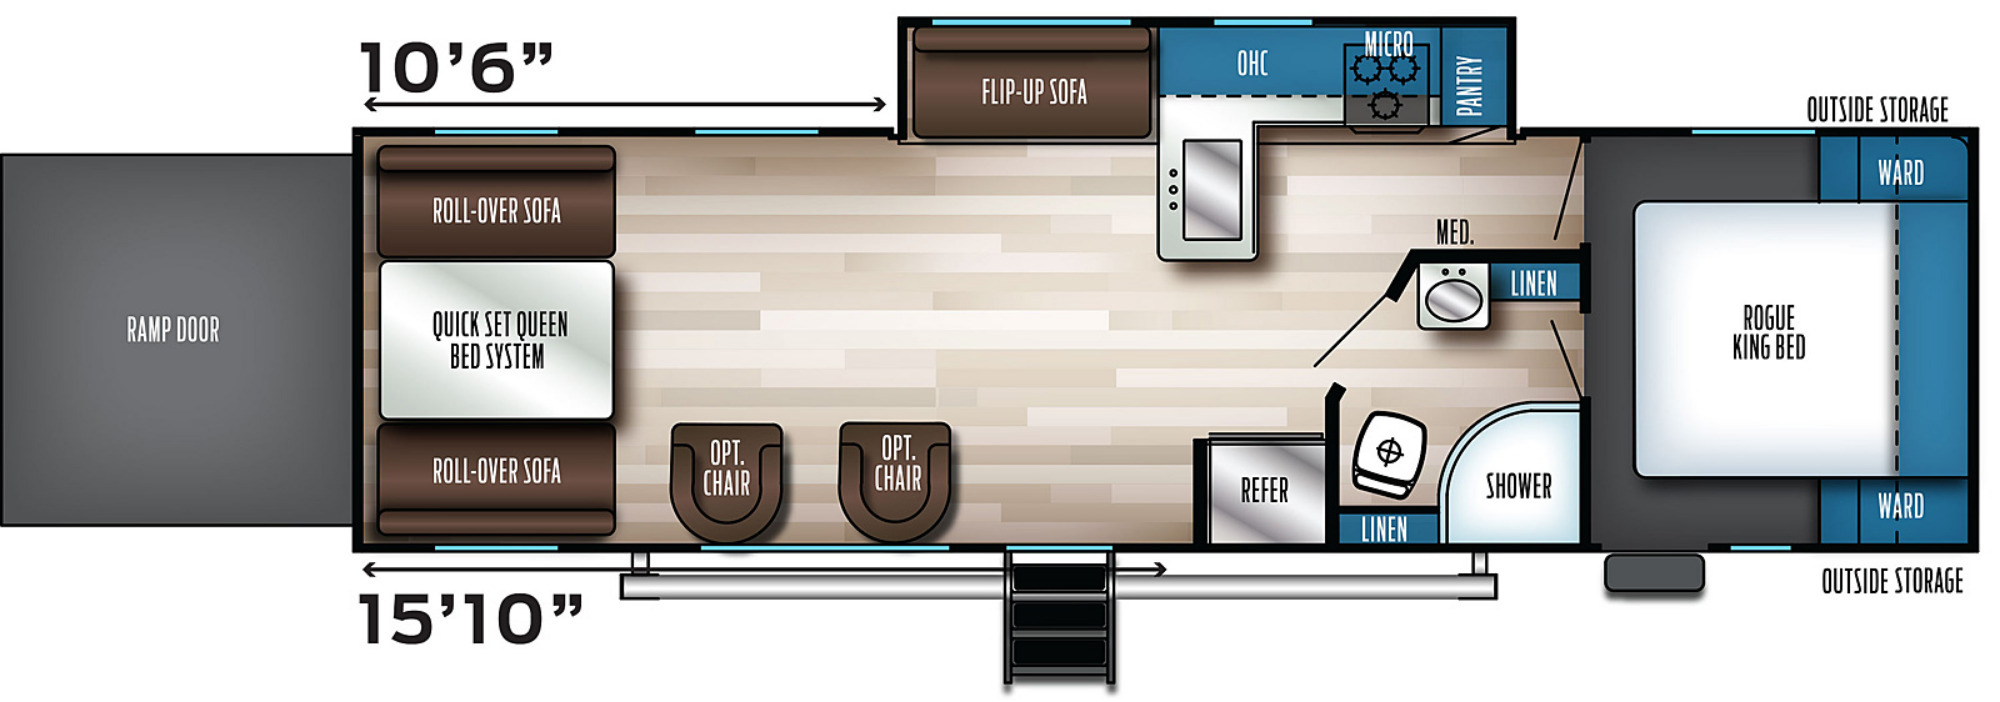 View Floor Plan for 2022 FOREST RIVER ROGUE 29KS